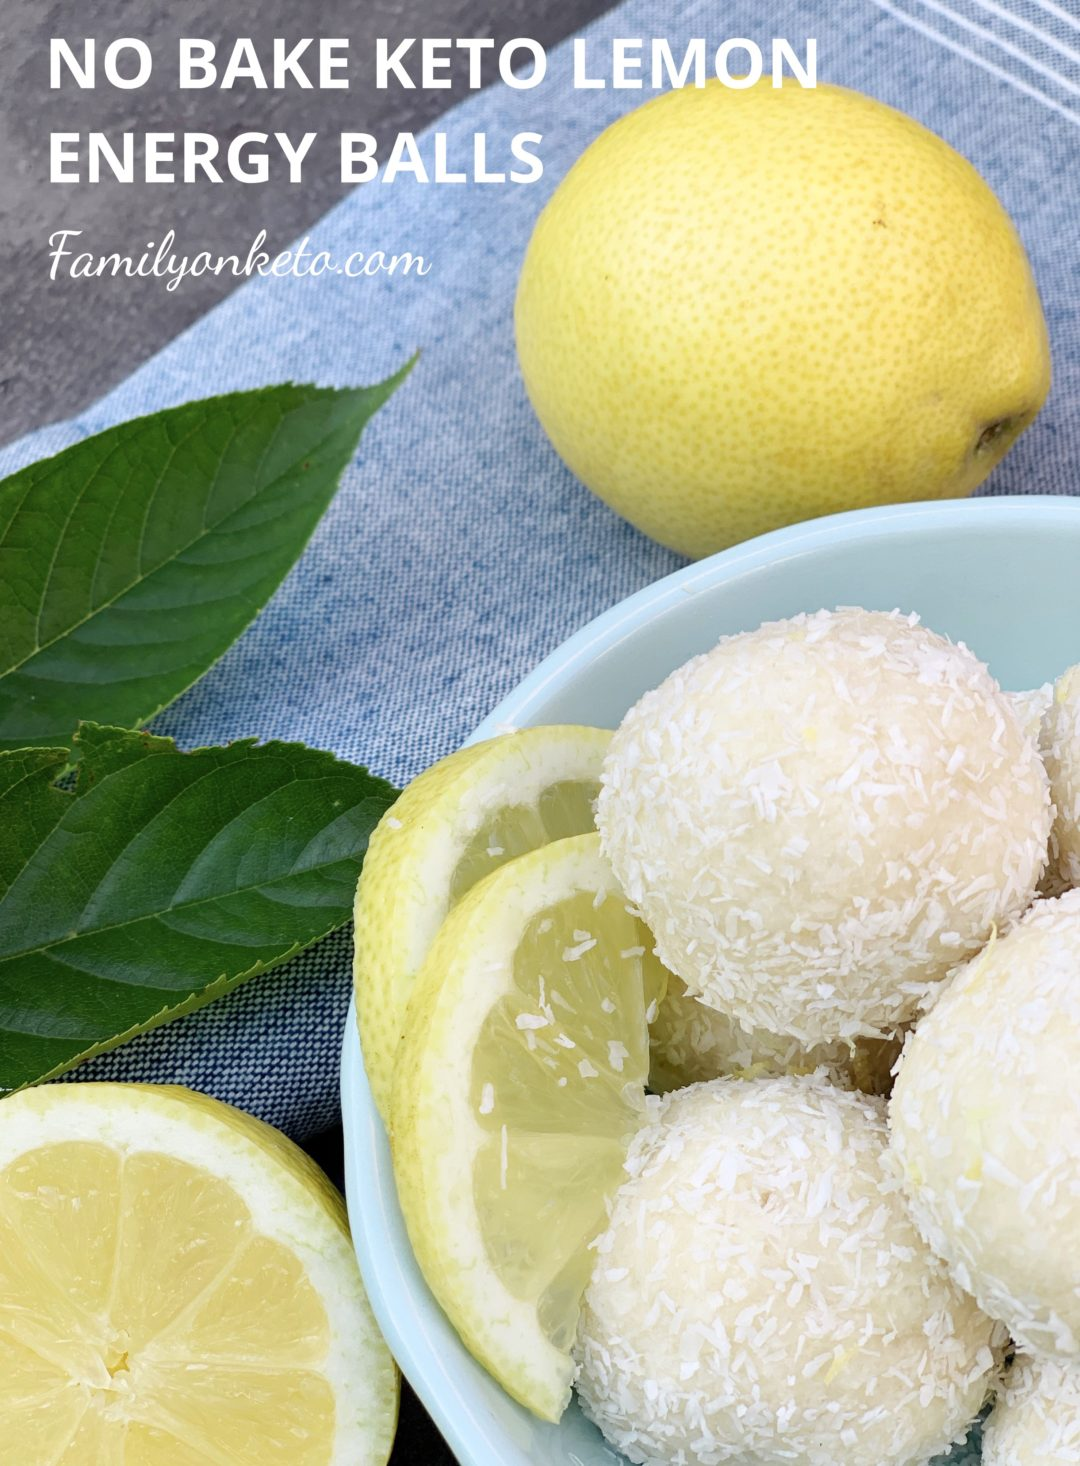 Picture of no bake keto lemon energy balls in a bowl on the table